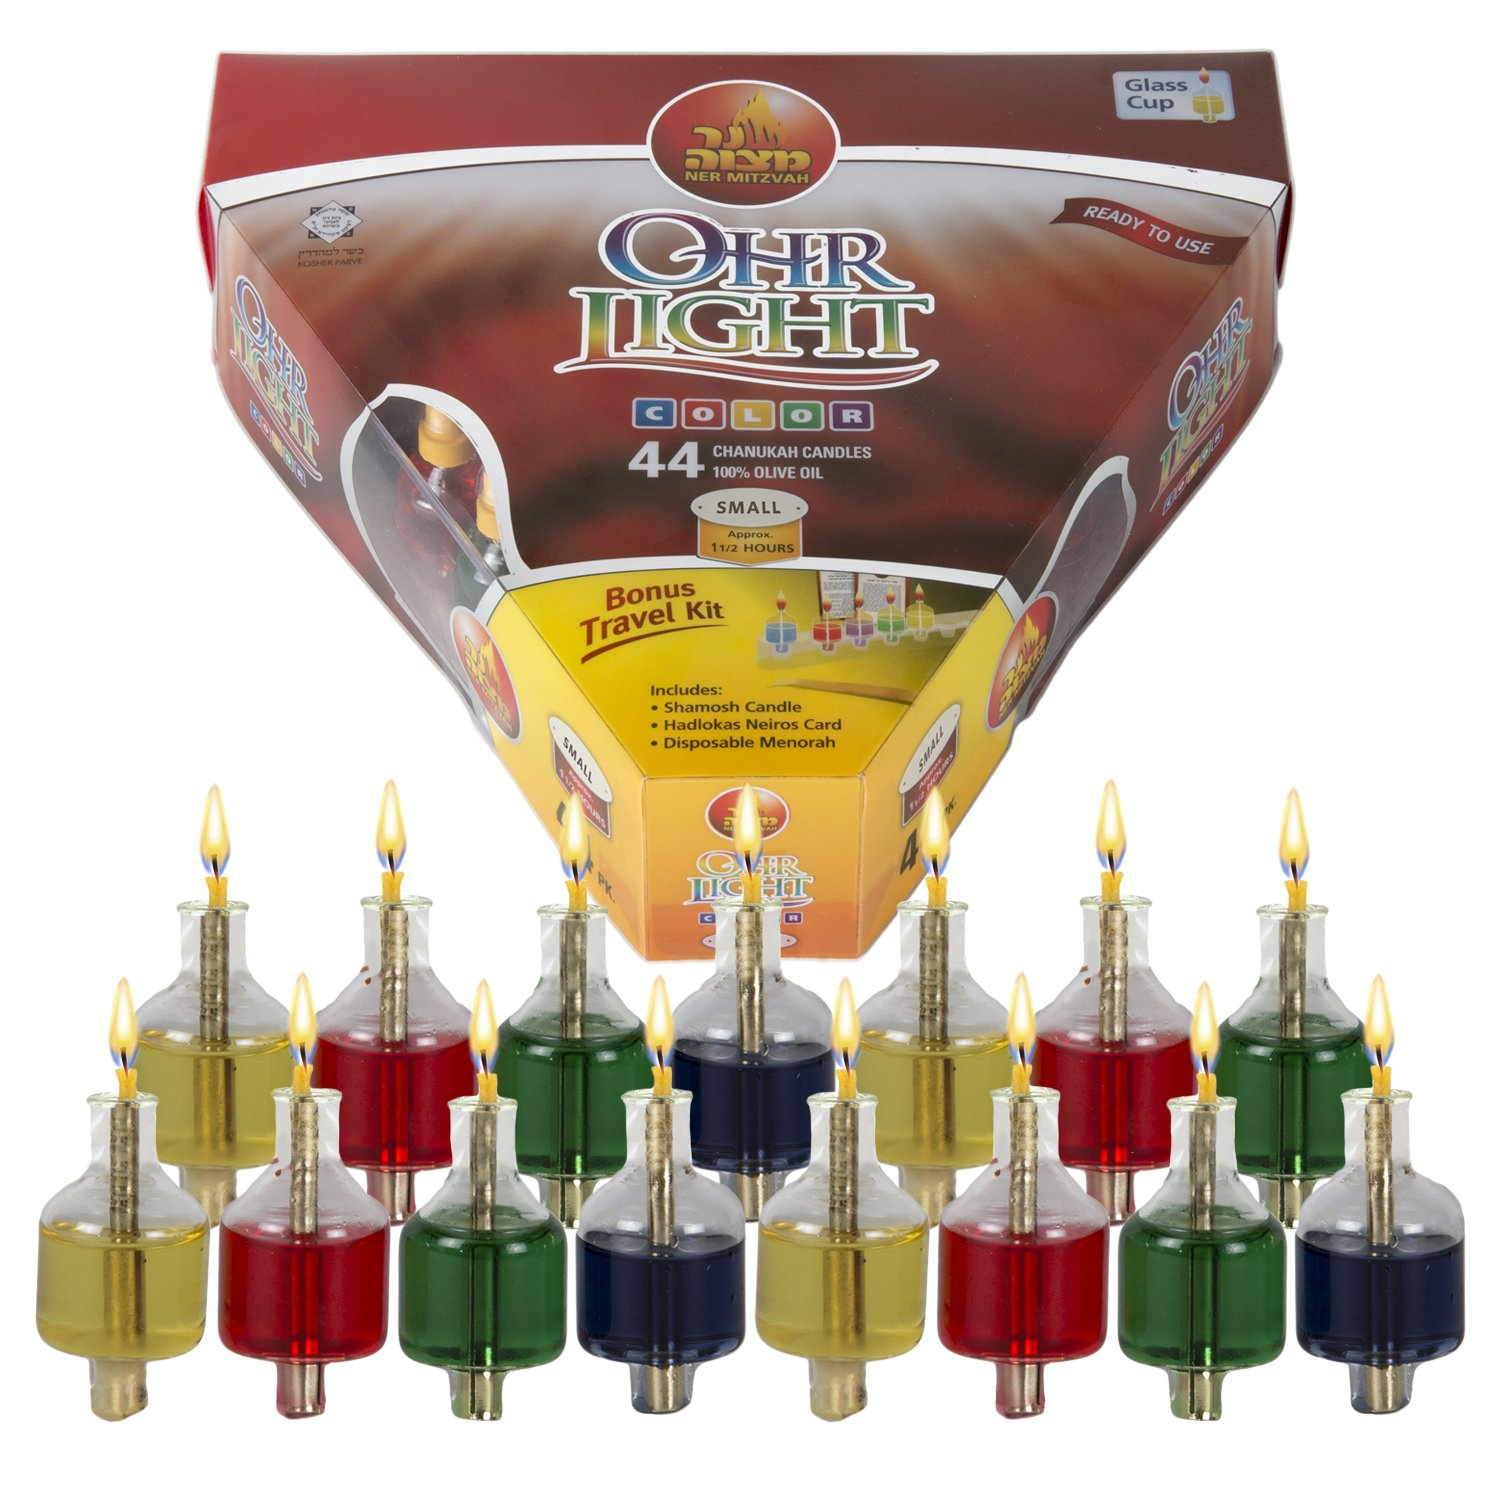 Ner Mitzvah Hanukkah Colored Ohr Lights, Pre-Filled Oil Candles - Small Size, 44 per pk. Burns Aprox. 1 1/2 Hrs by Ner Mitzvah